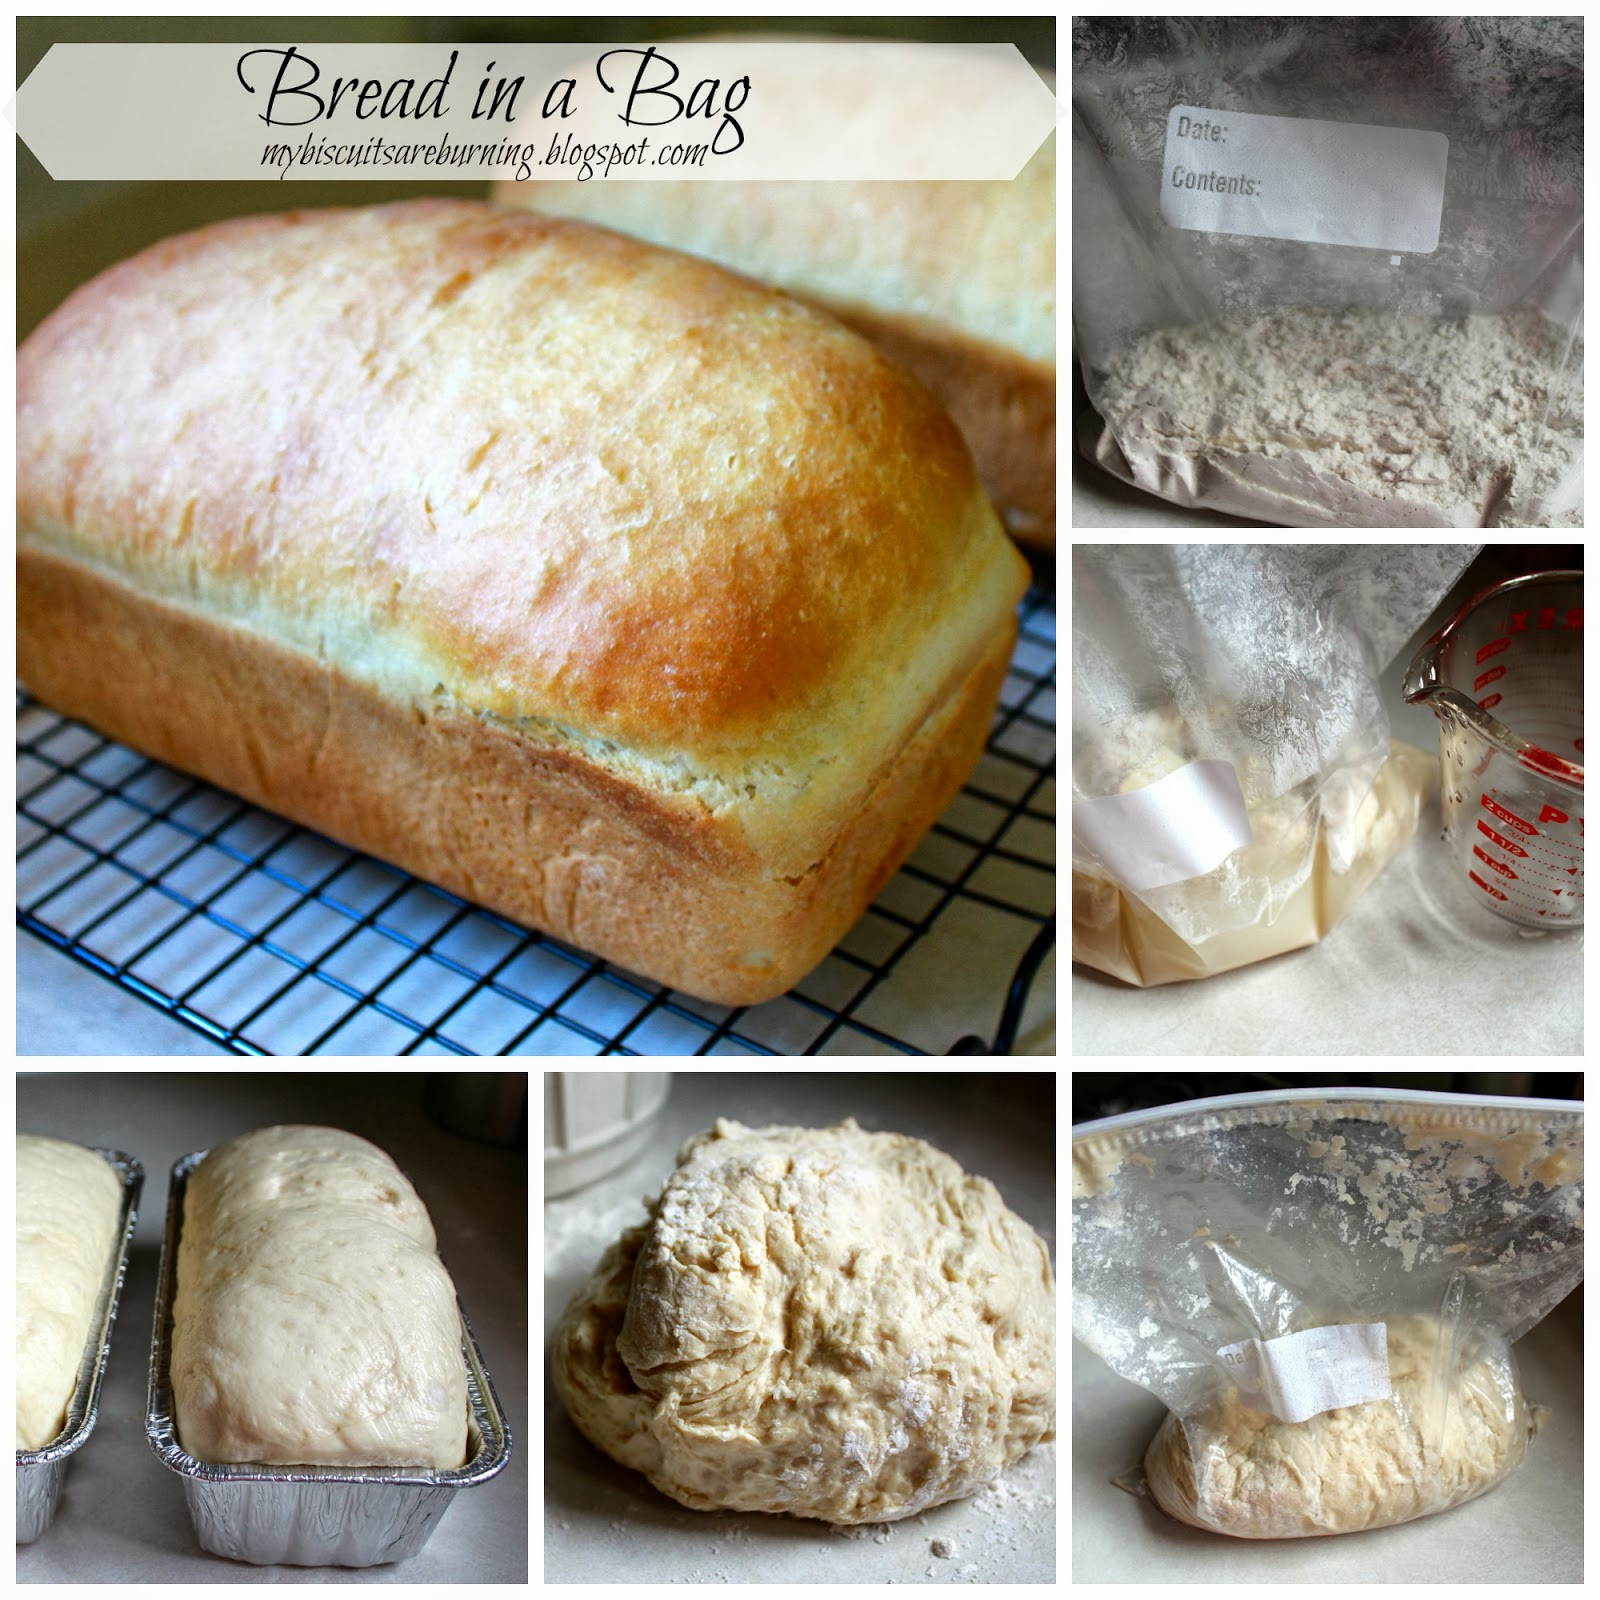 Bread In A Bag Recipe  My Biscuits are Burning Bread in a Bag